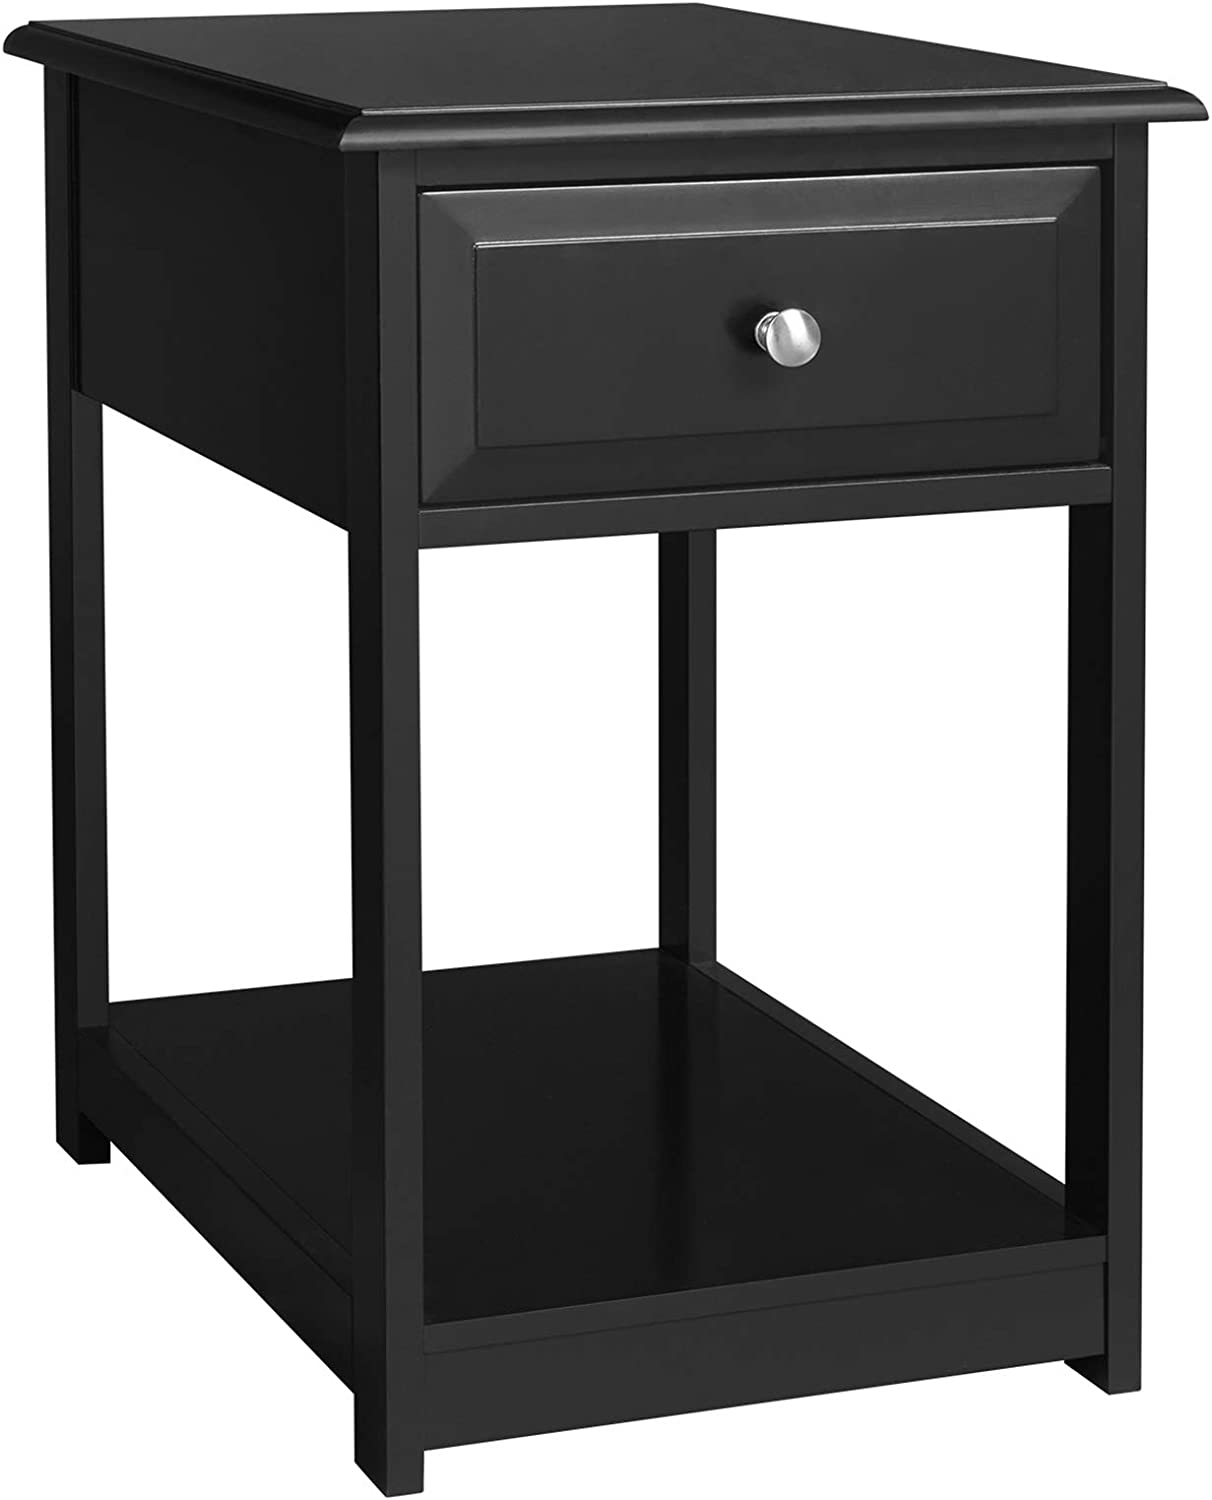 VASAGLE Side, End Table, Nightstand with 1 Drawer, Durable, for Bedroom, Living Room, Office, Black